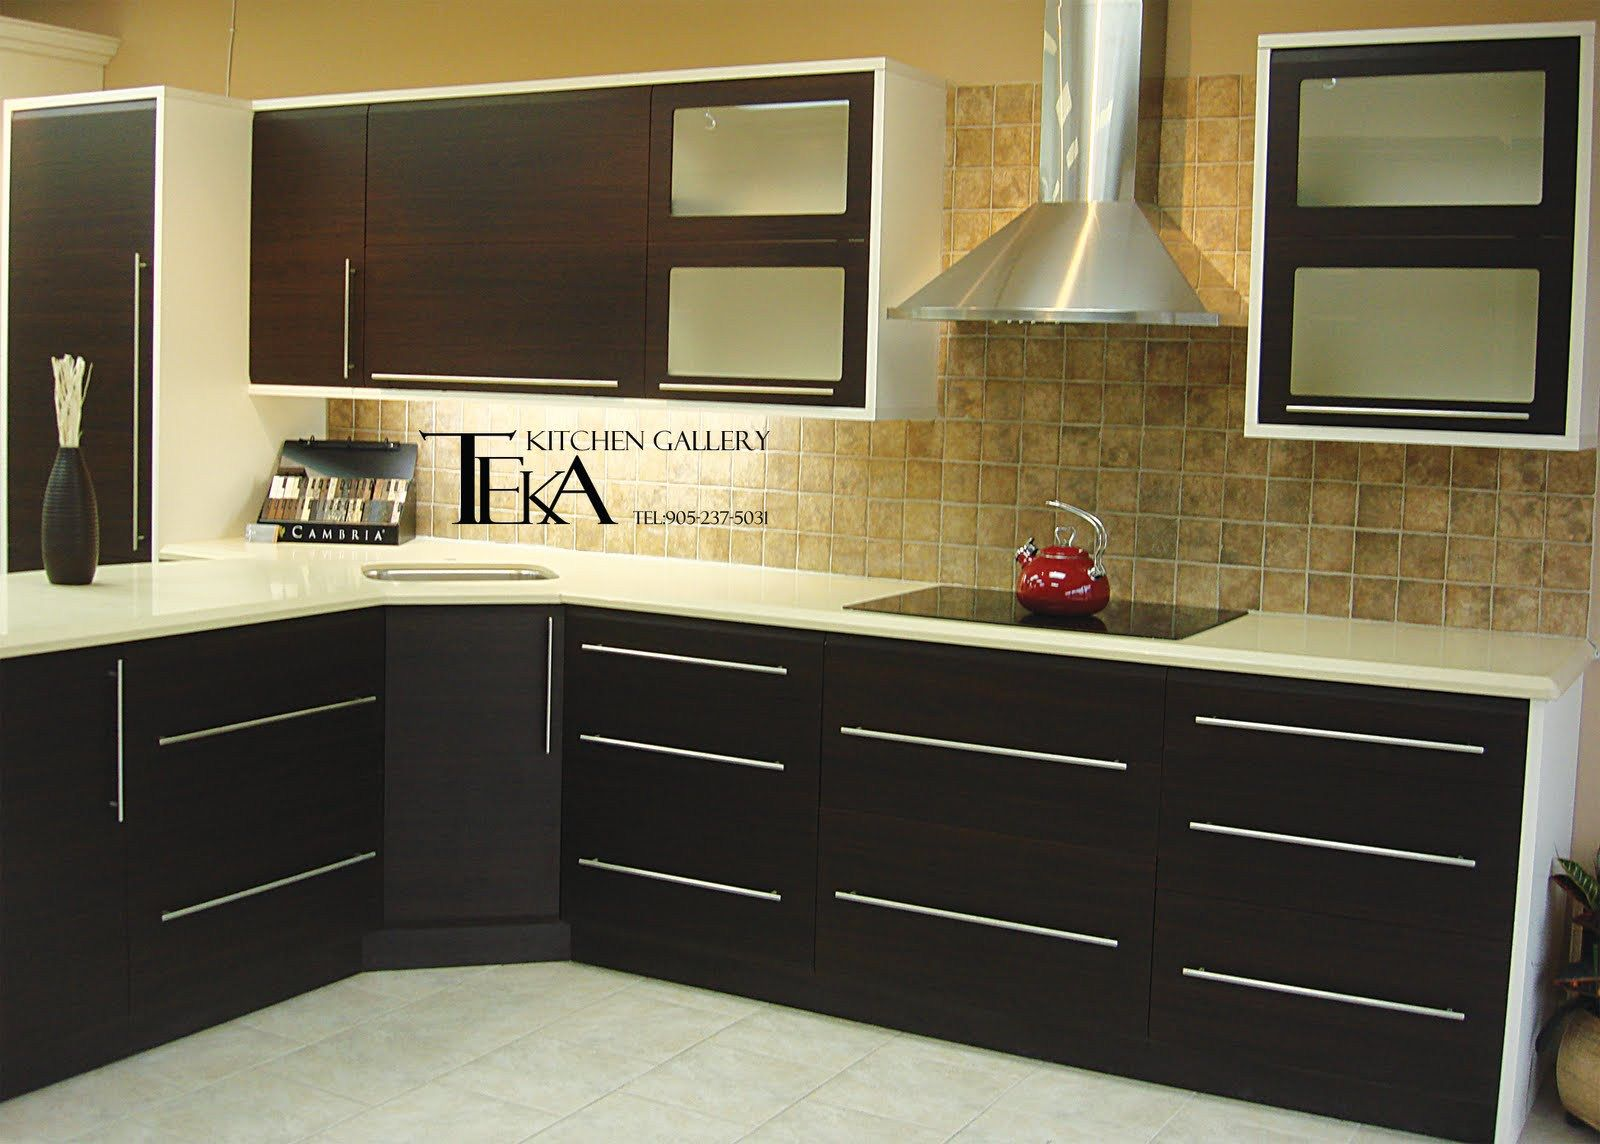 kitchen samples sink sprayer replacement gallery classy simple cabinet design ideas examples cabinets